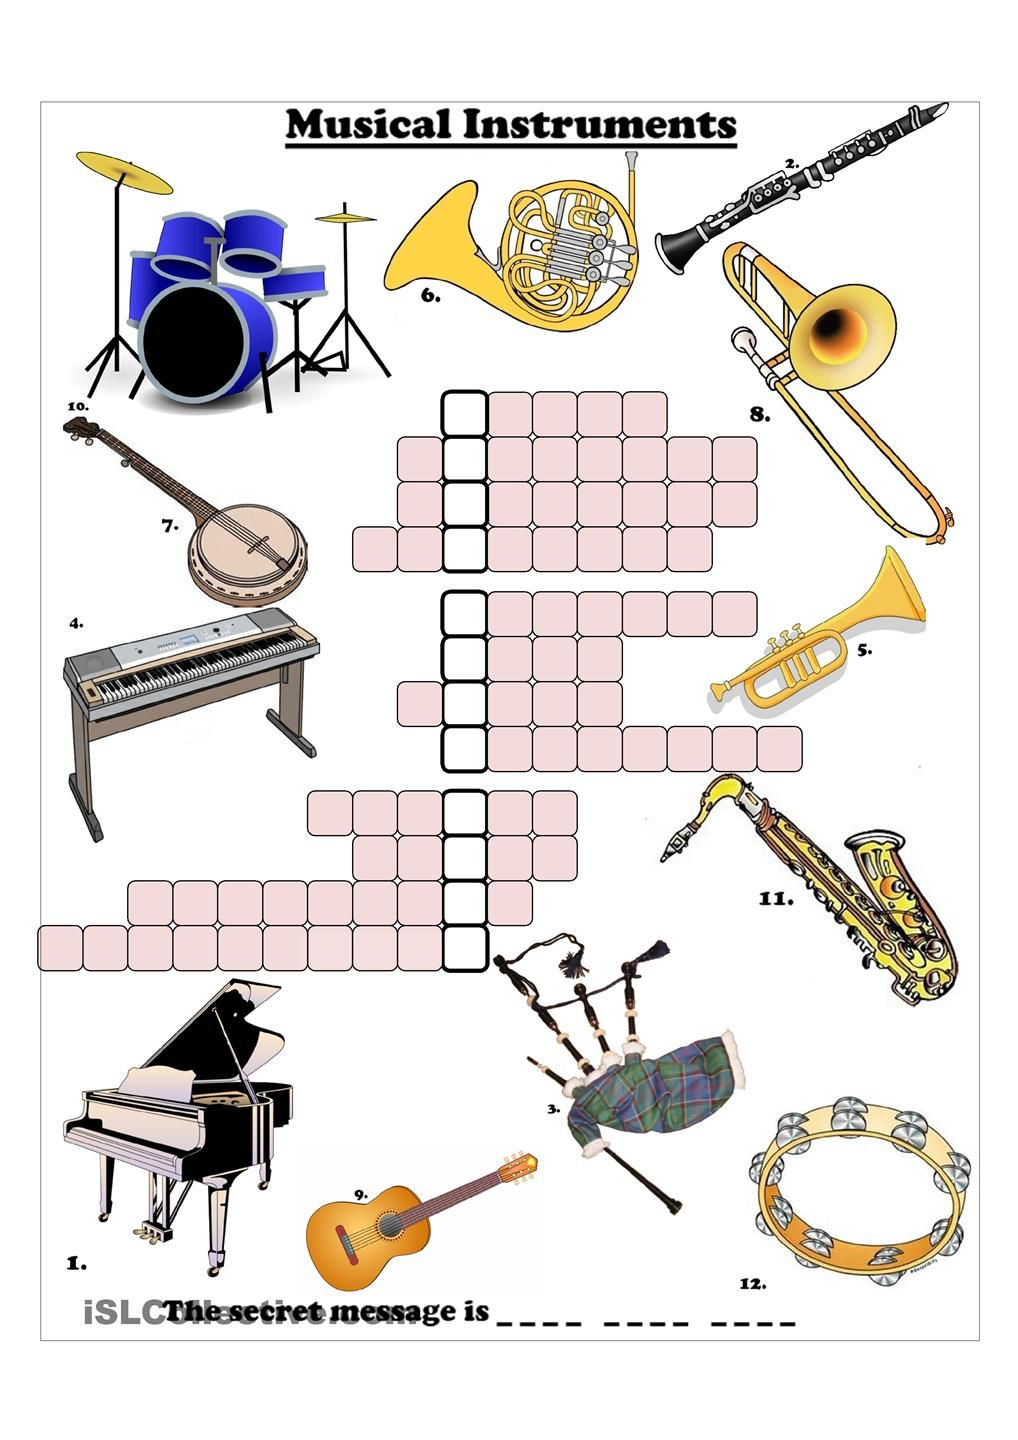 Worksheets Instrument Worksheets musical instruments crossword crosswords pinterest crossword